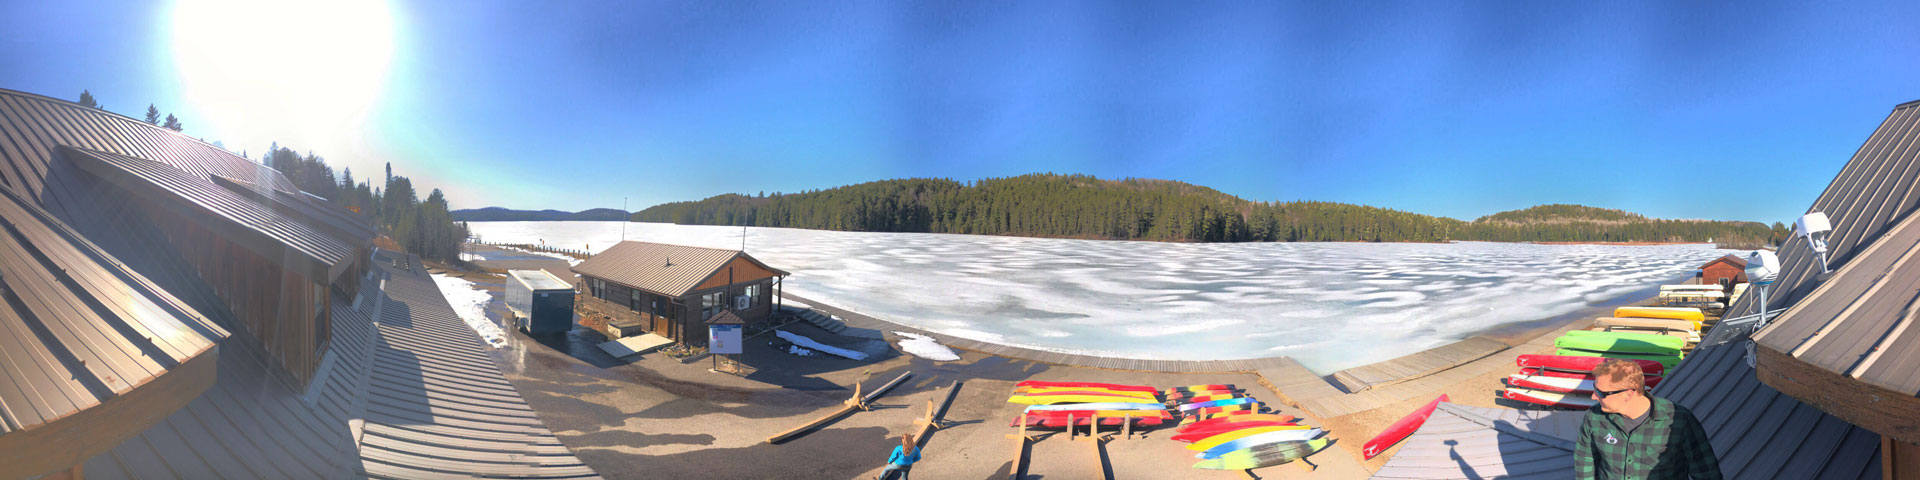 Algonquin Outfitters Lake Opeongo Store - from the roof